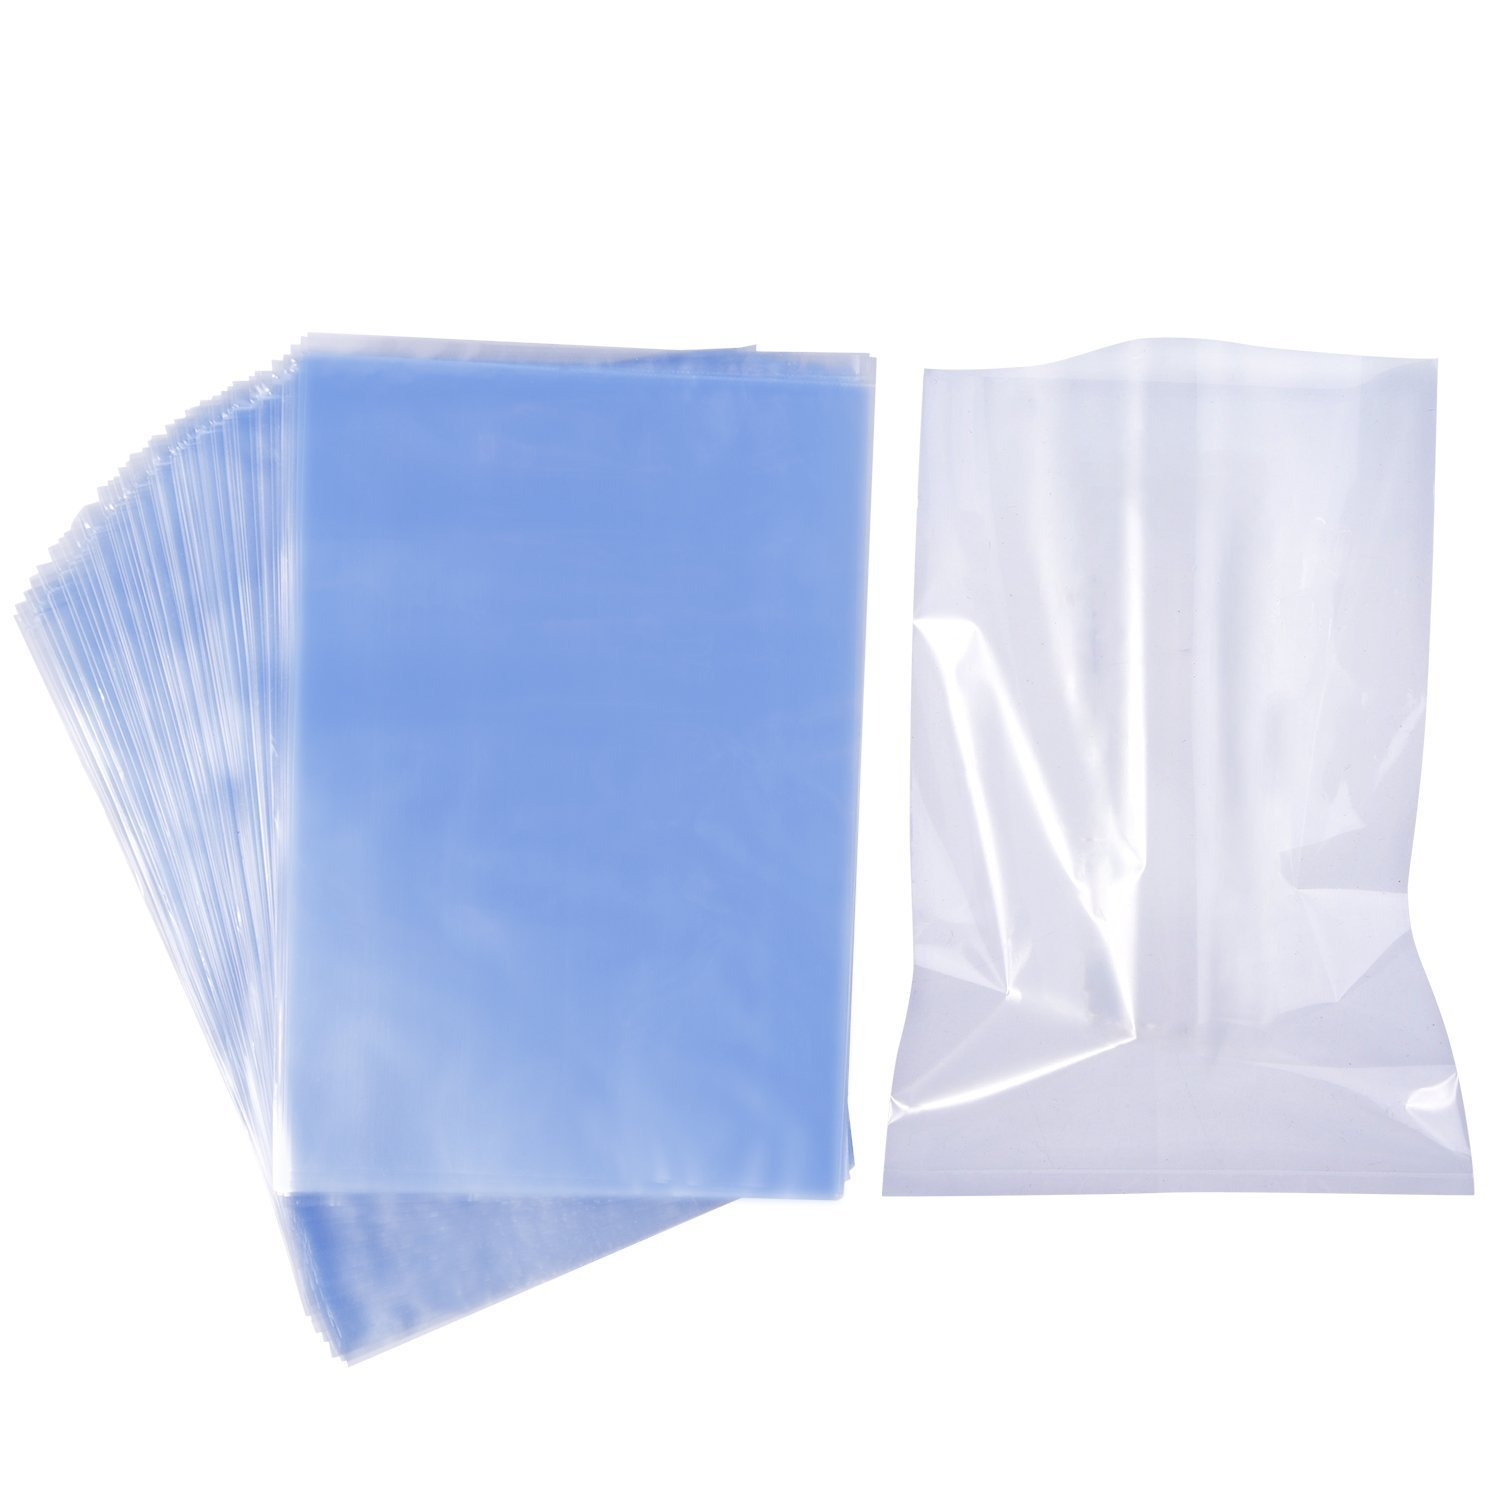 Shrink Wrap Bags 100 PCS Heat Shrink Bag 9x14 Inch and 100 Gauge for Wrapping Bath Bombs, Soaps, Oil And Homemade Gifts